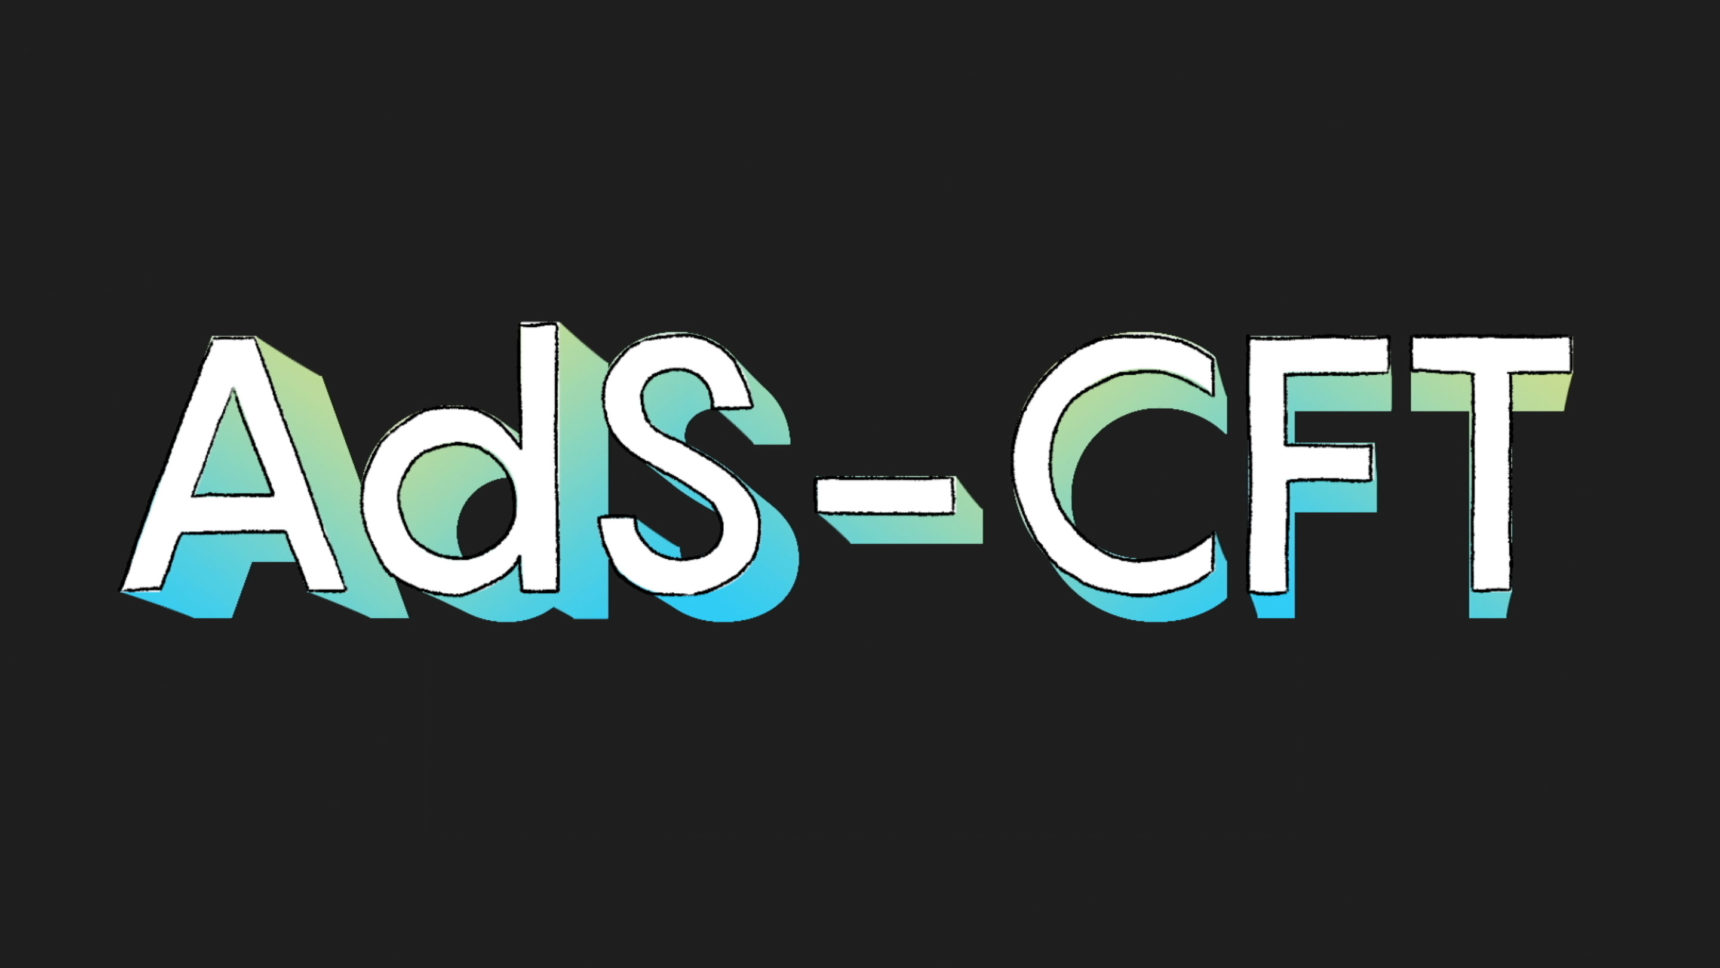 Video: What is the AdS/CFT duality and why are physicists so enamored of it?